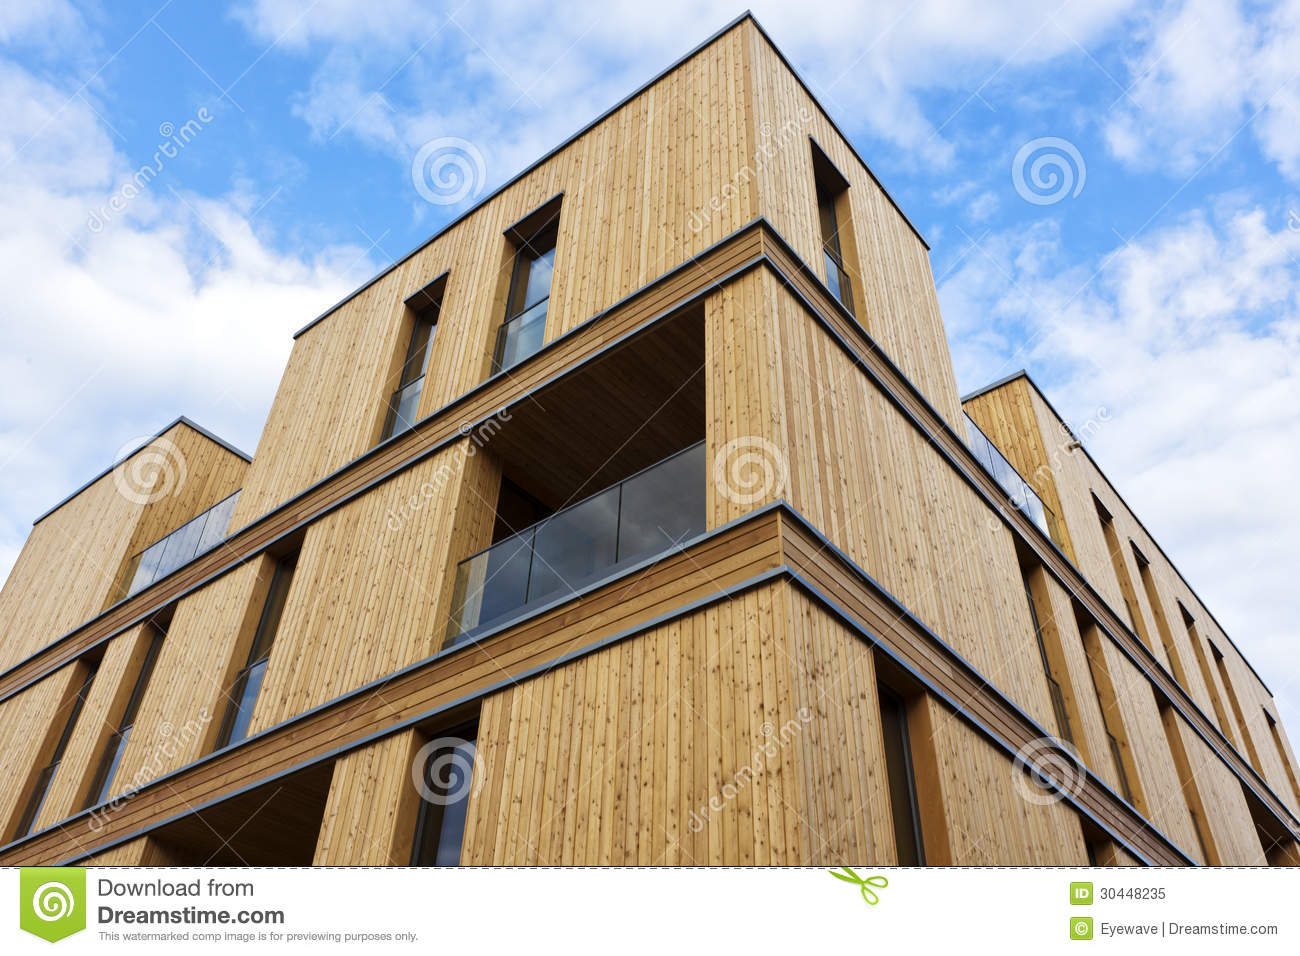 Royalty Free Stock Photo Contemporary Wooden House Apartment Building Made Wood Hamburg Image30448235 on contemporary house plans